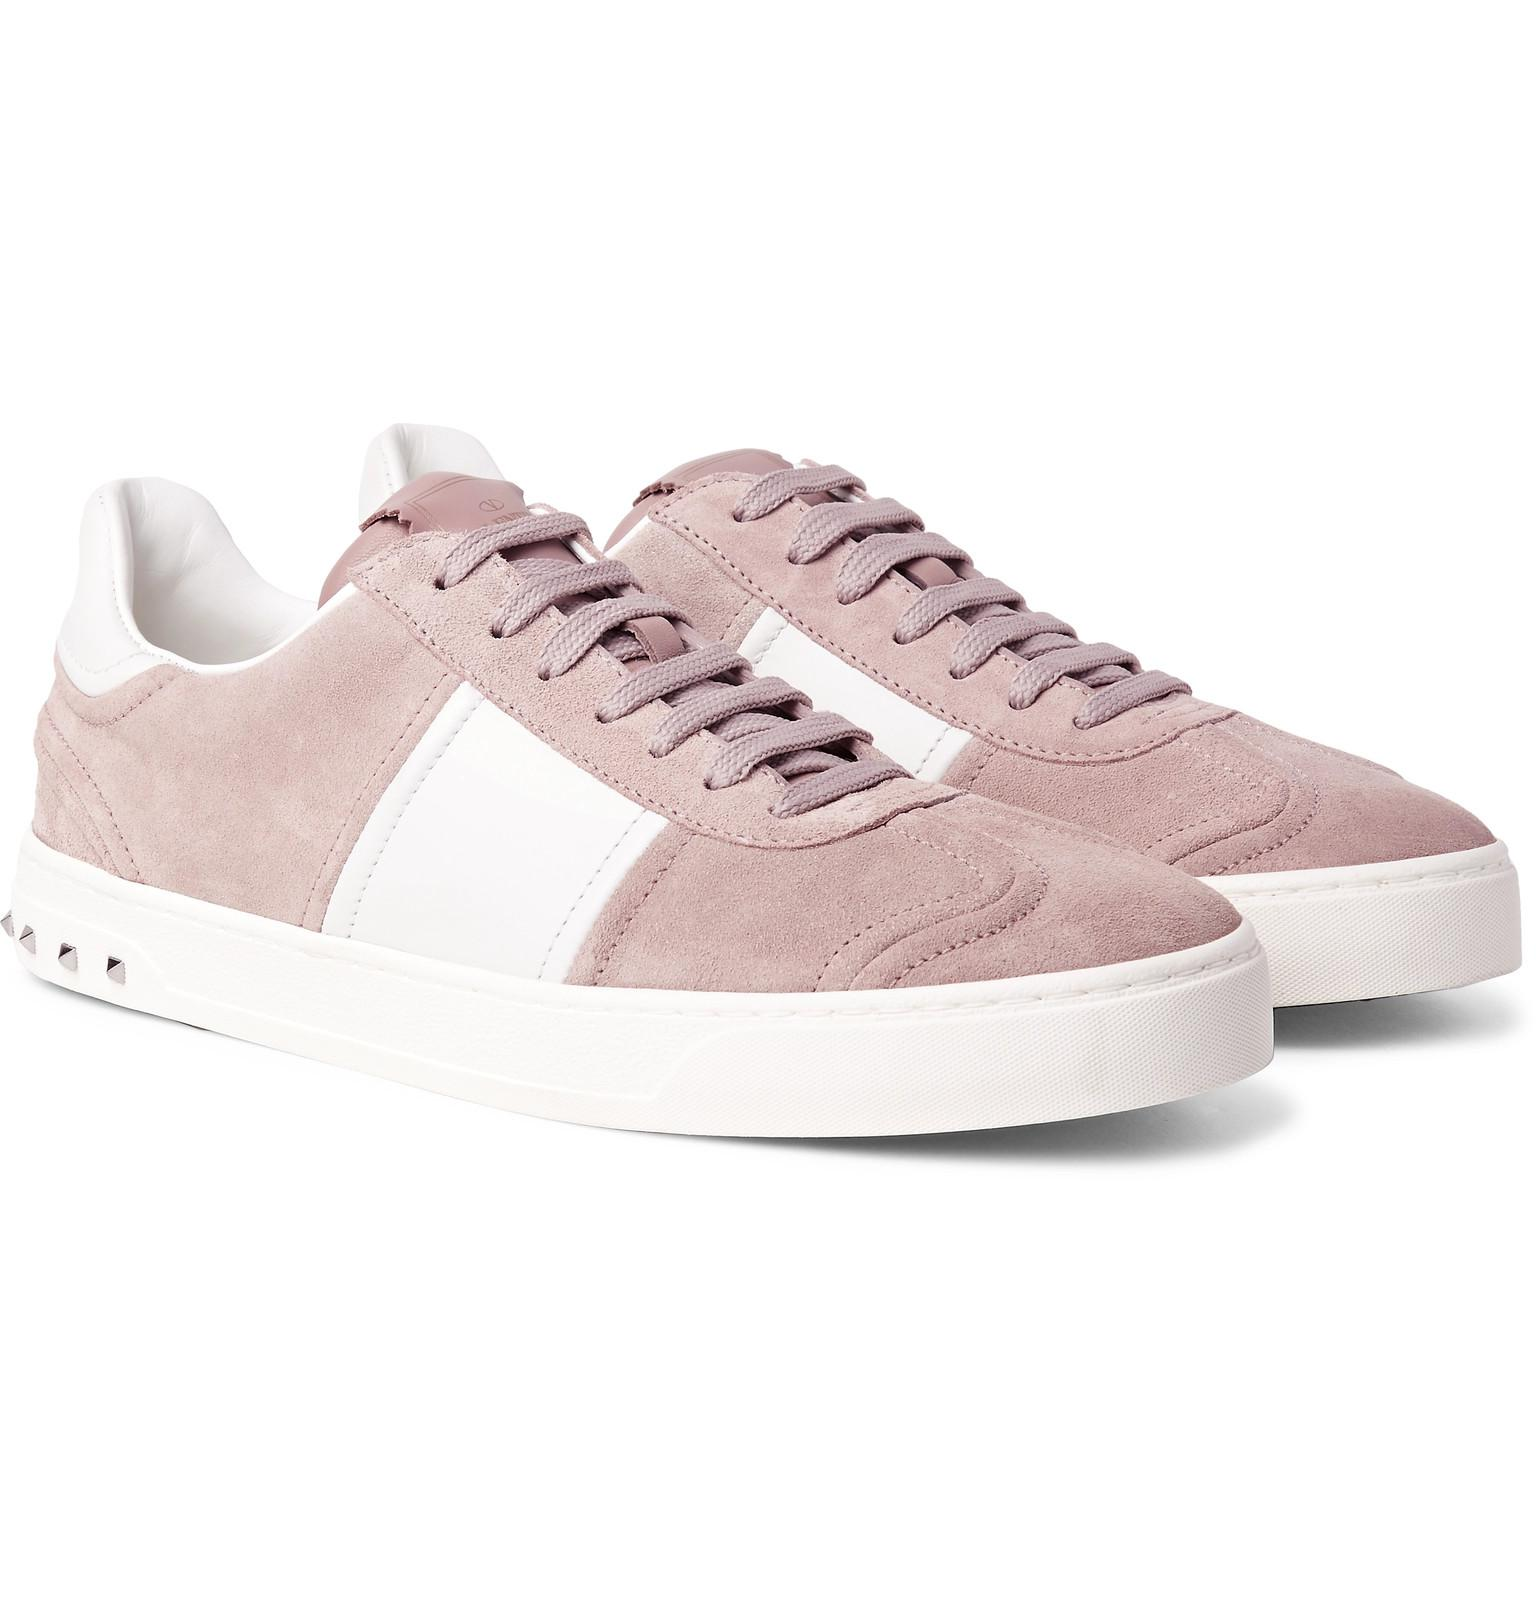 5221add08217a Valentino Garavani Flycrew Leather-panelled Suede Sneakers in Pink ...